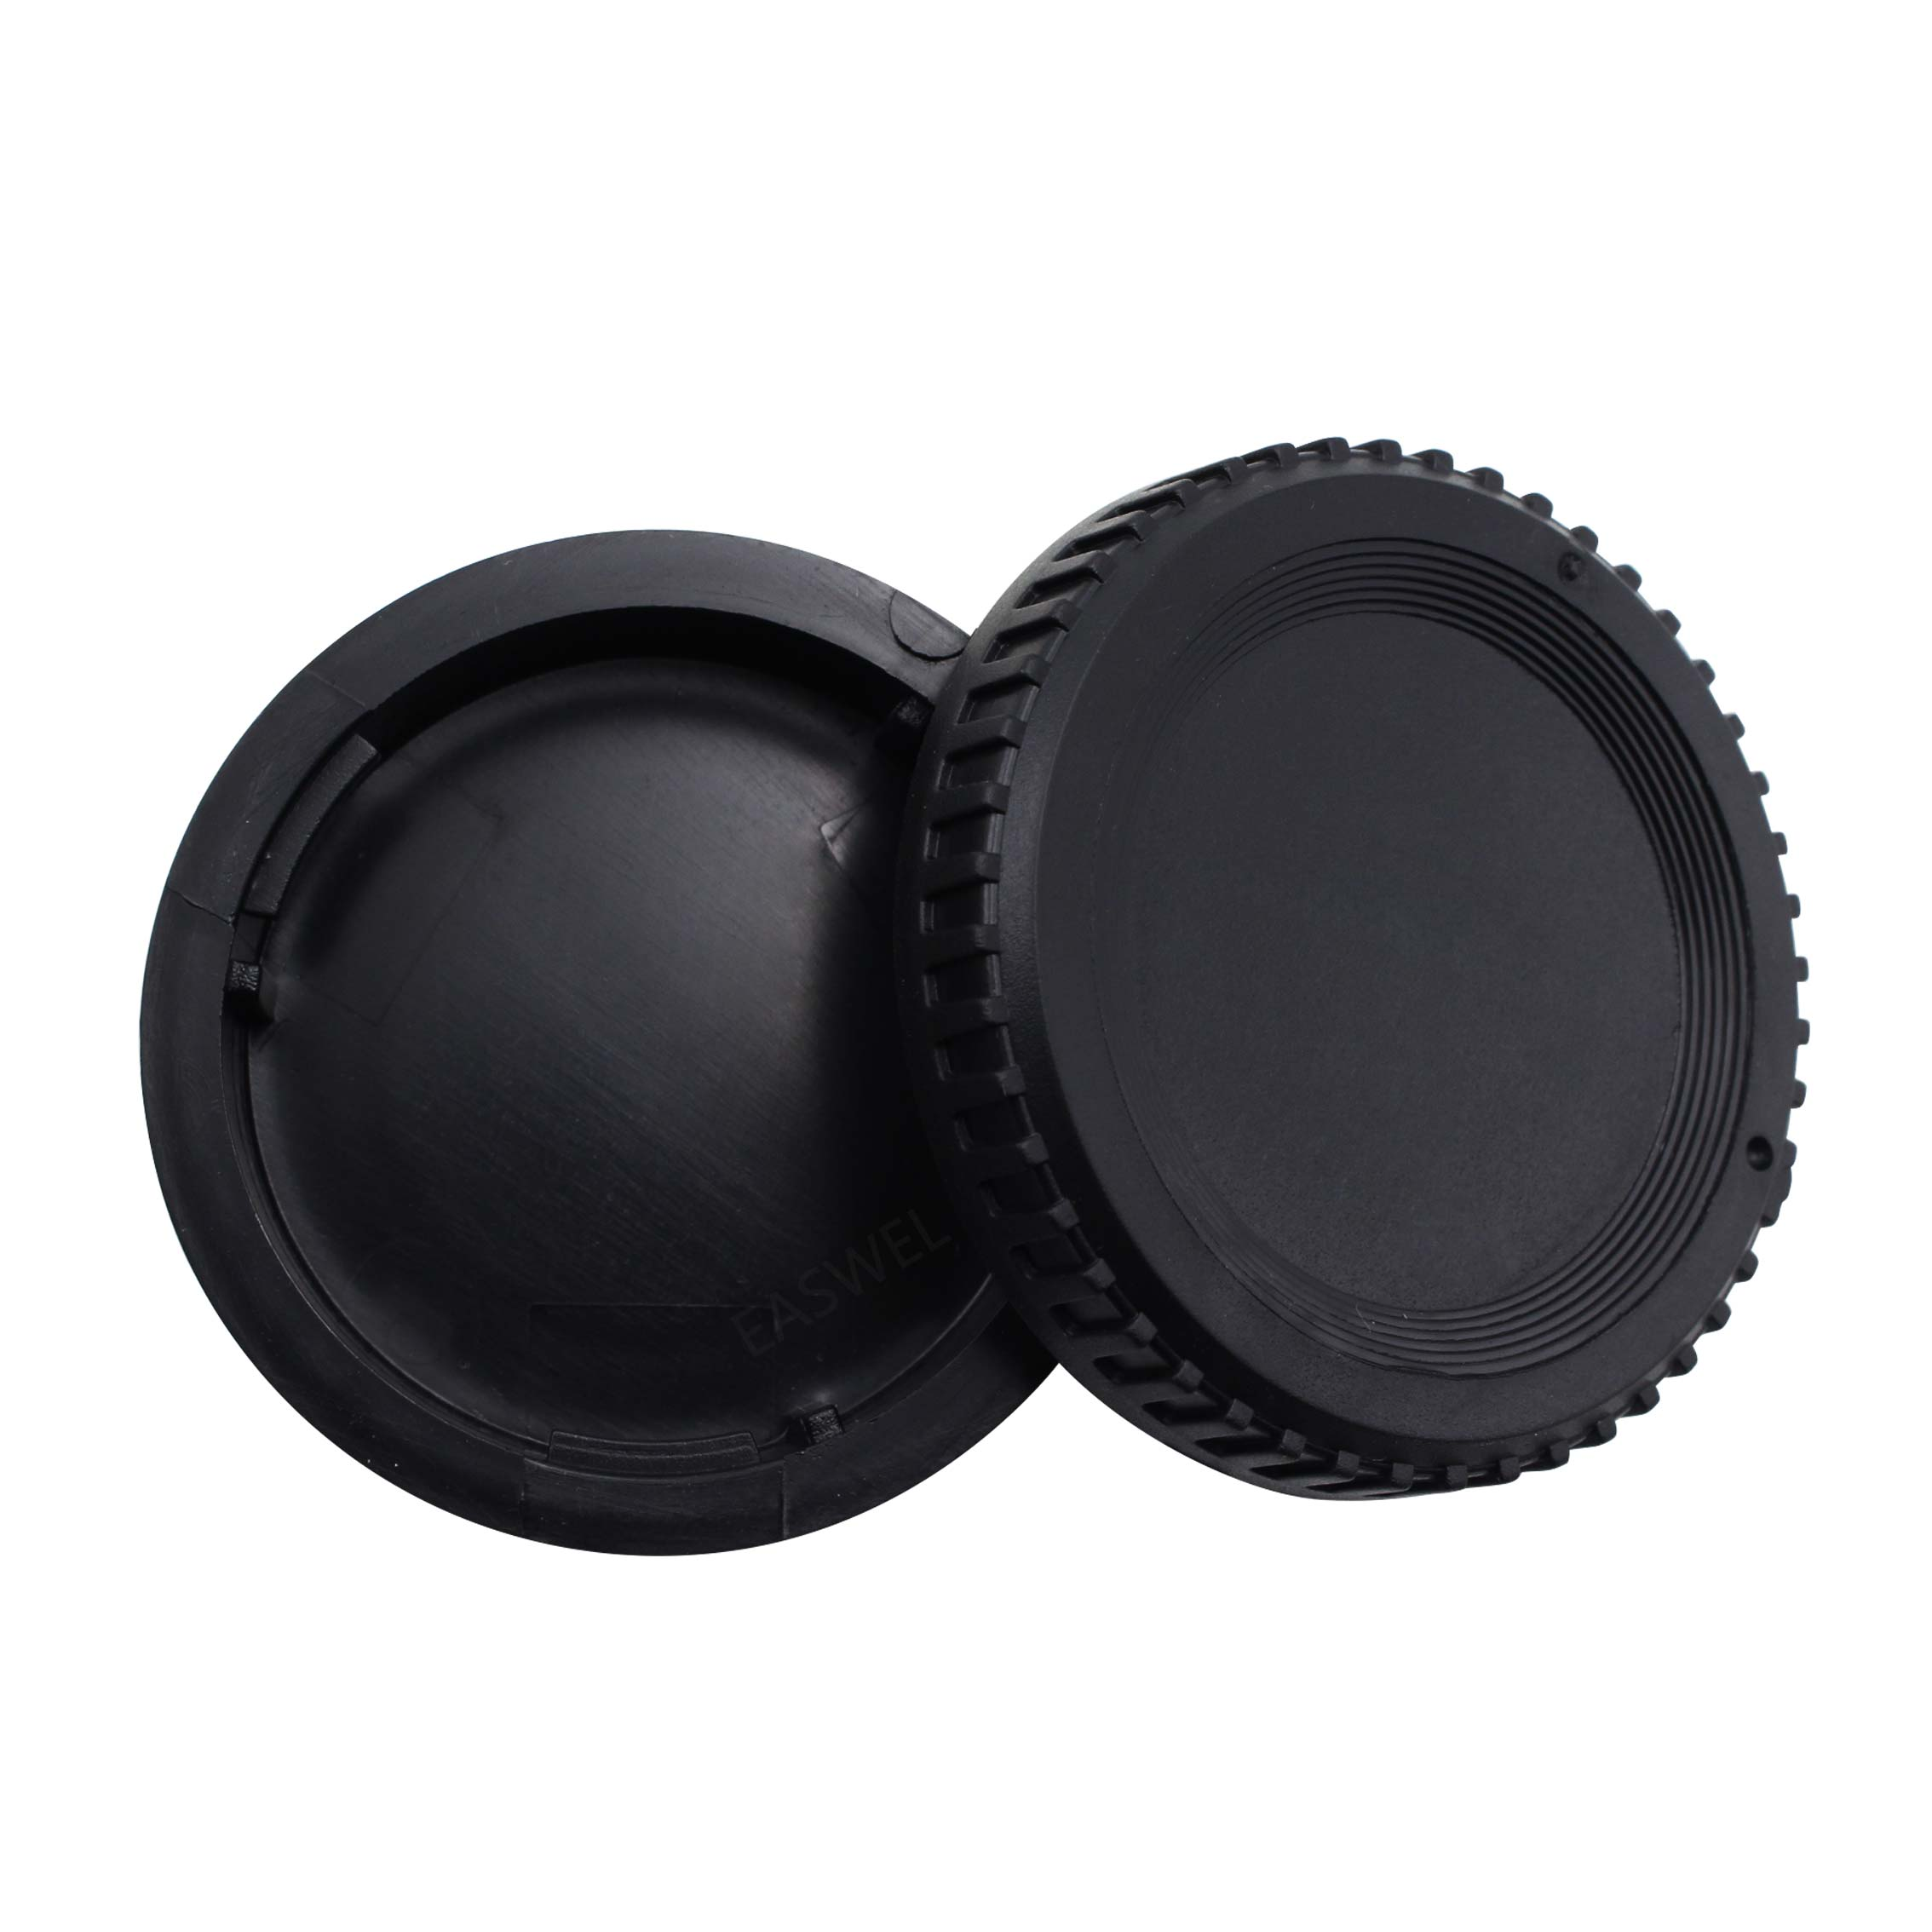 + Lens Cap Holder Nw Direct Microfiber Cleaning Cloth For Nikon D5500 Lens Cap Side Pinch 52mm